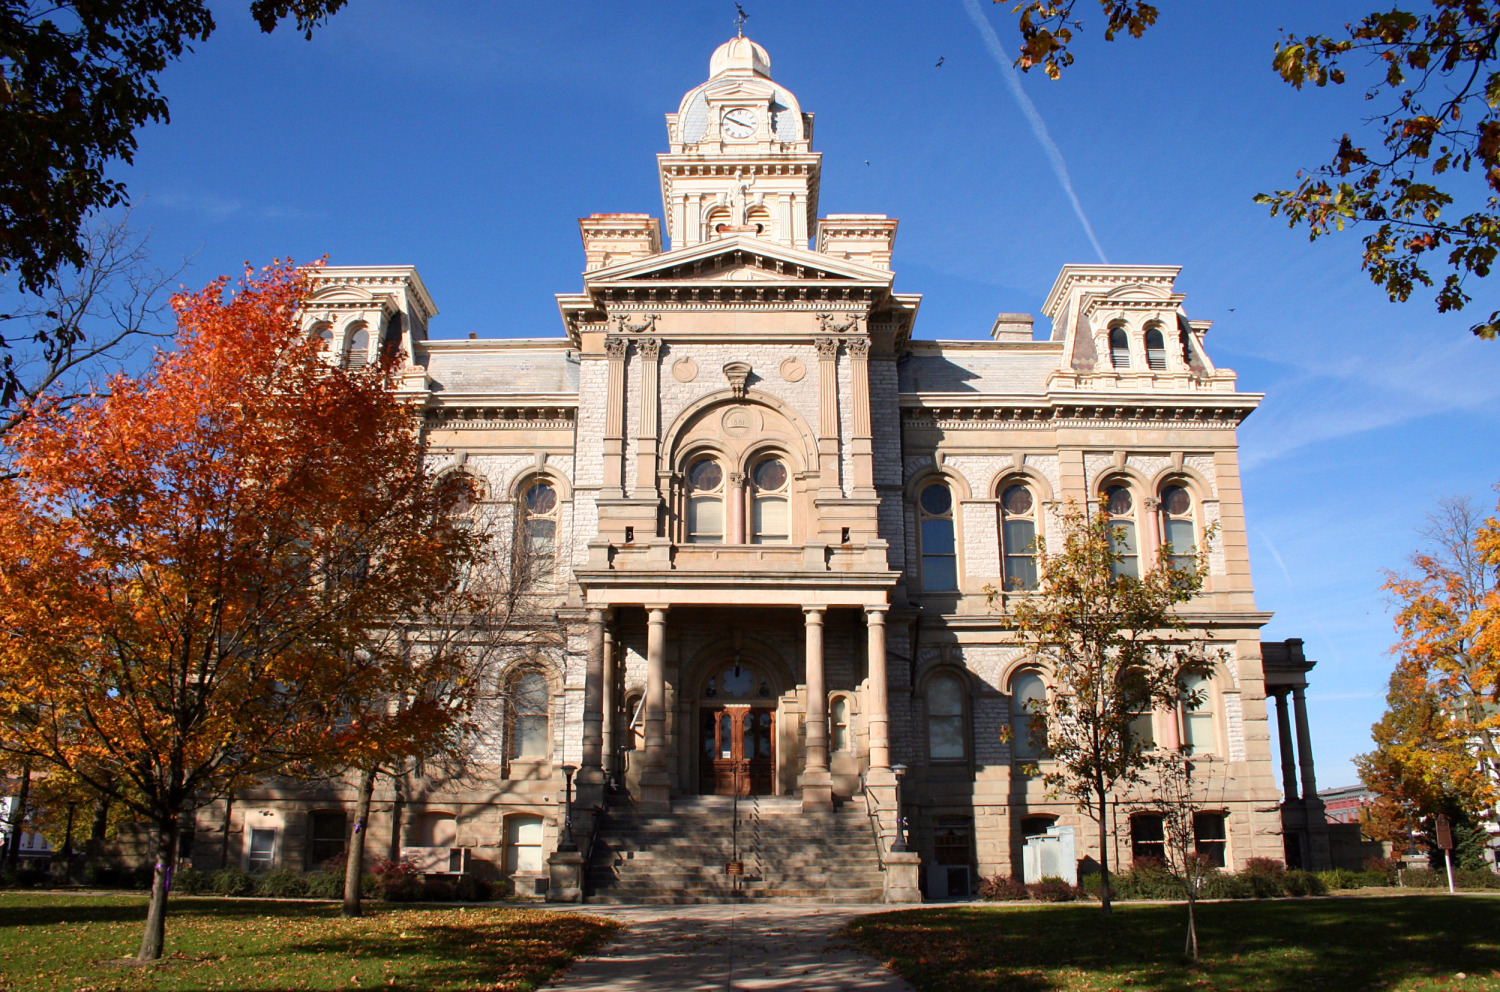 cropped-Sidney-ohio-courthouse.jpg